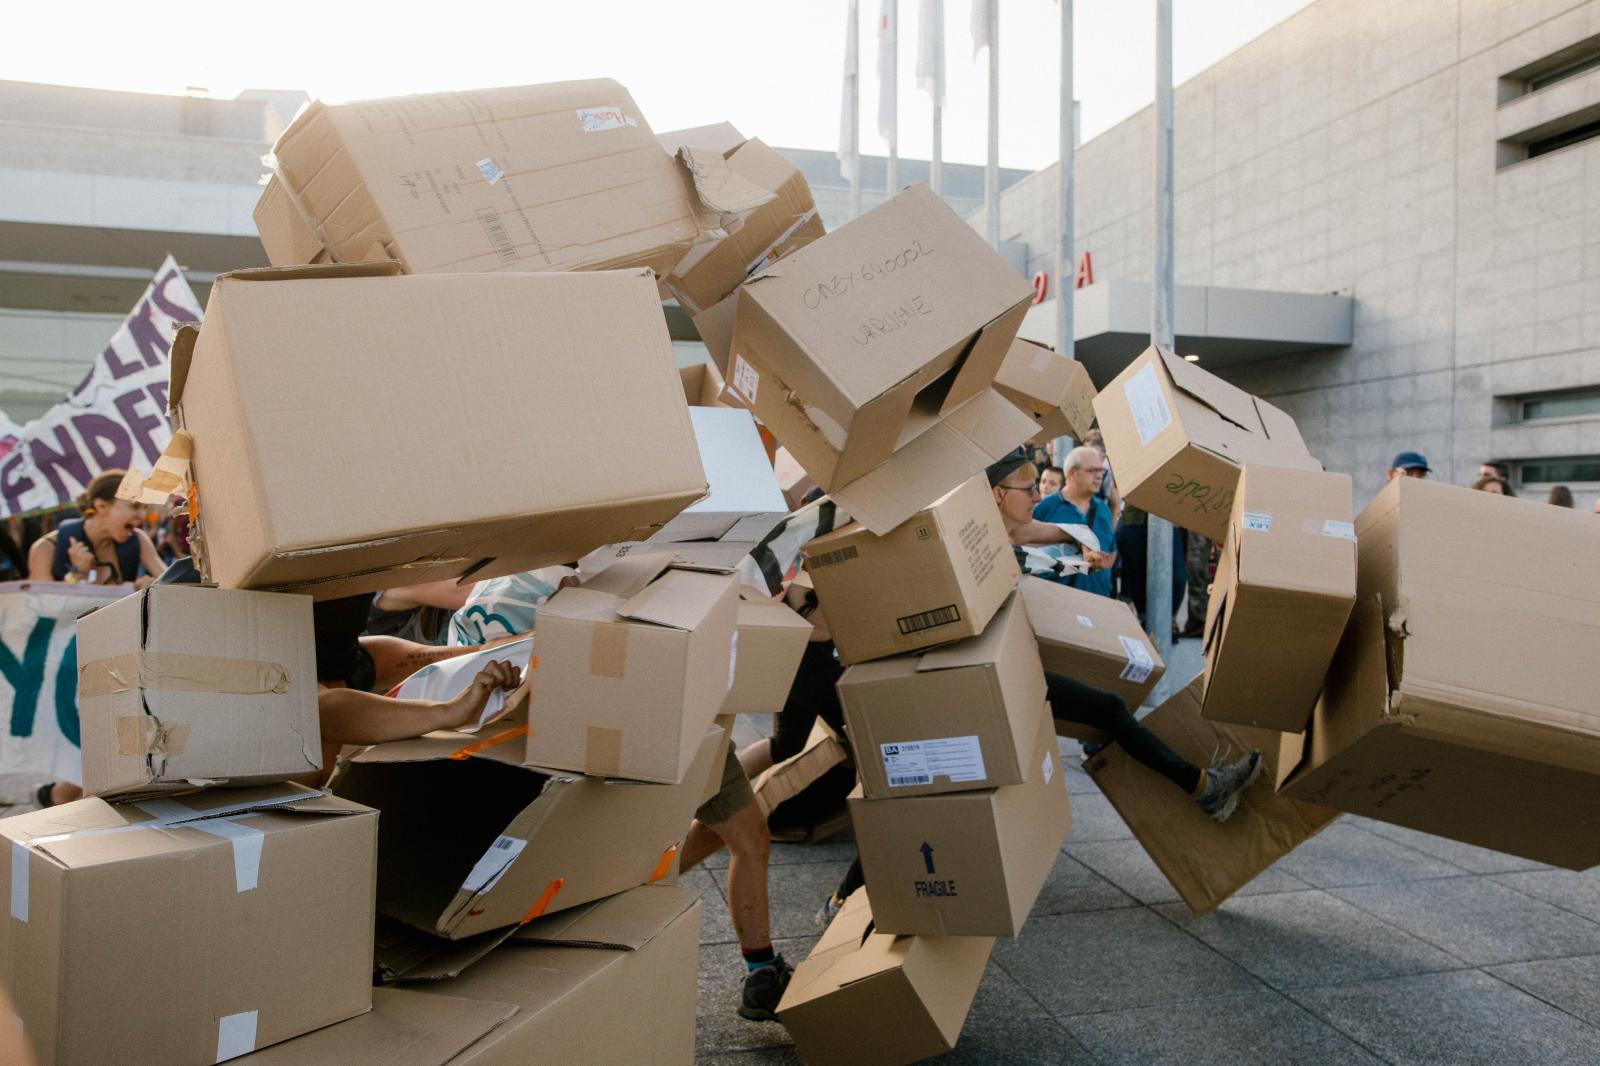 2019-08-23 - Feminist activists rush through a wall of carton boxes with topics the group fights.